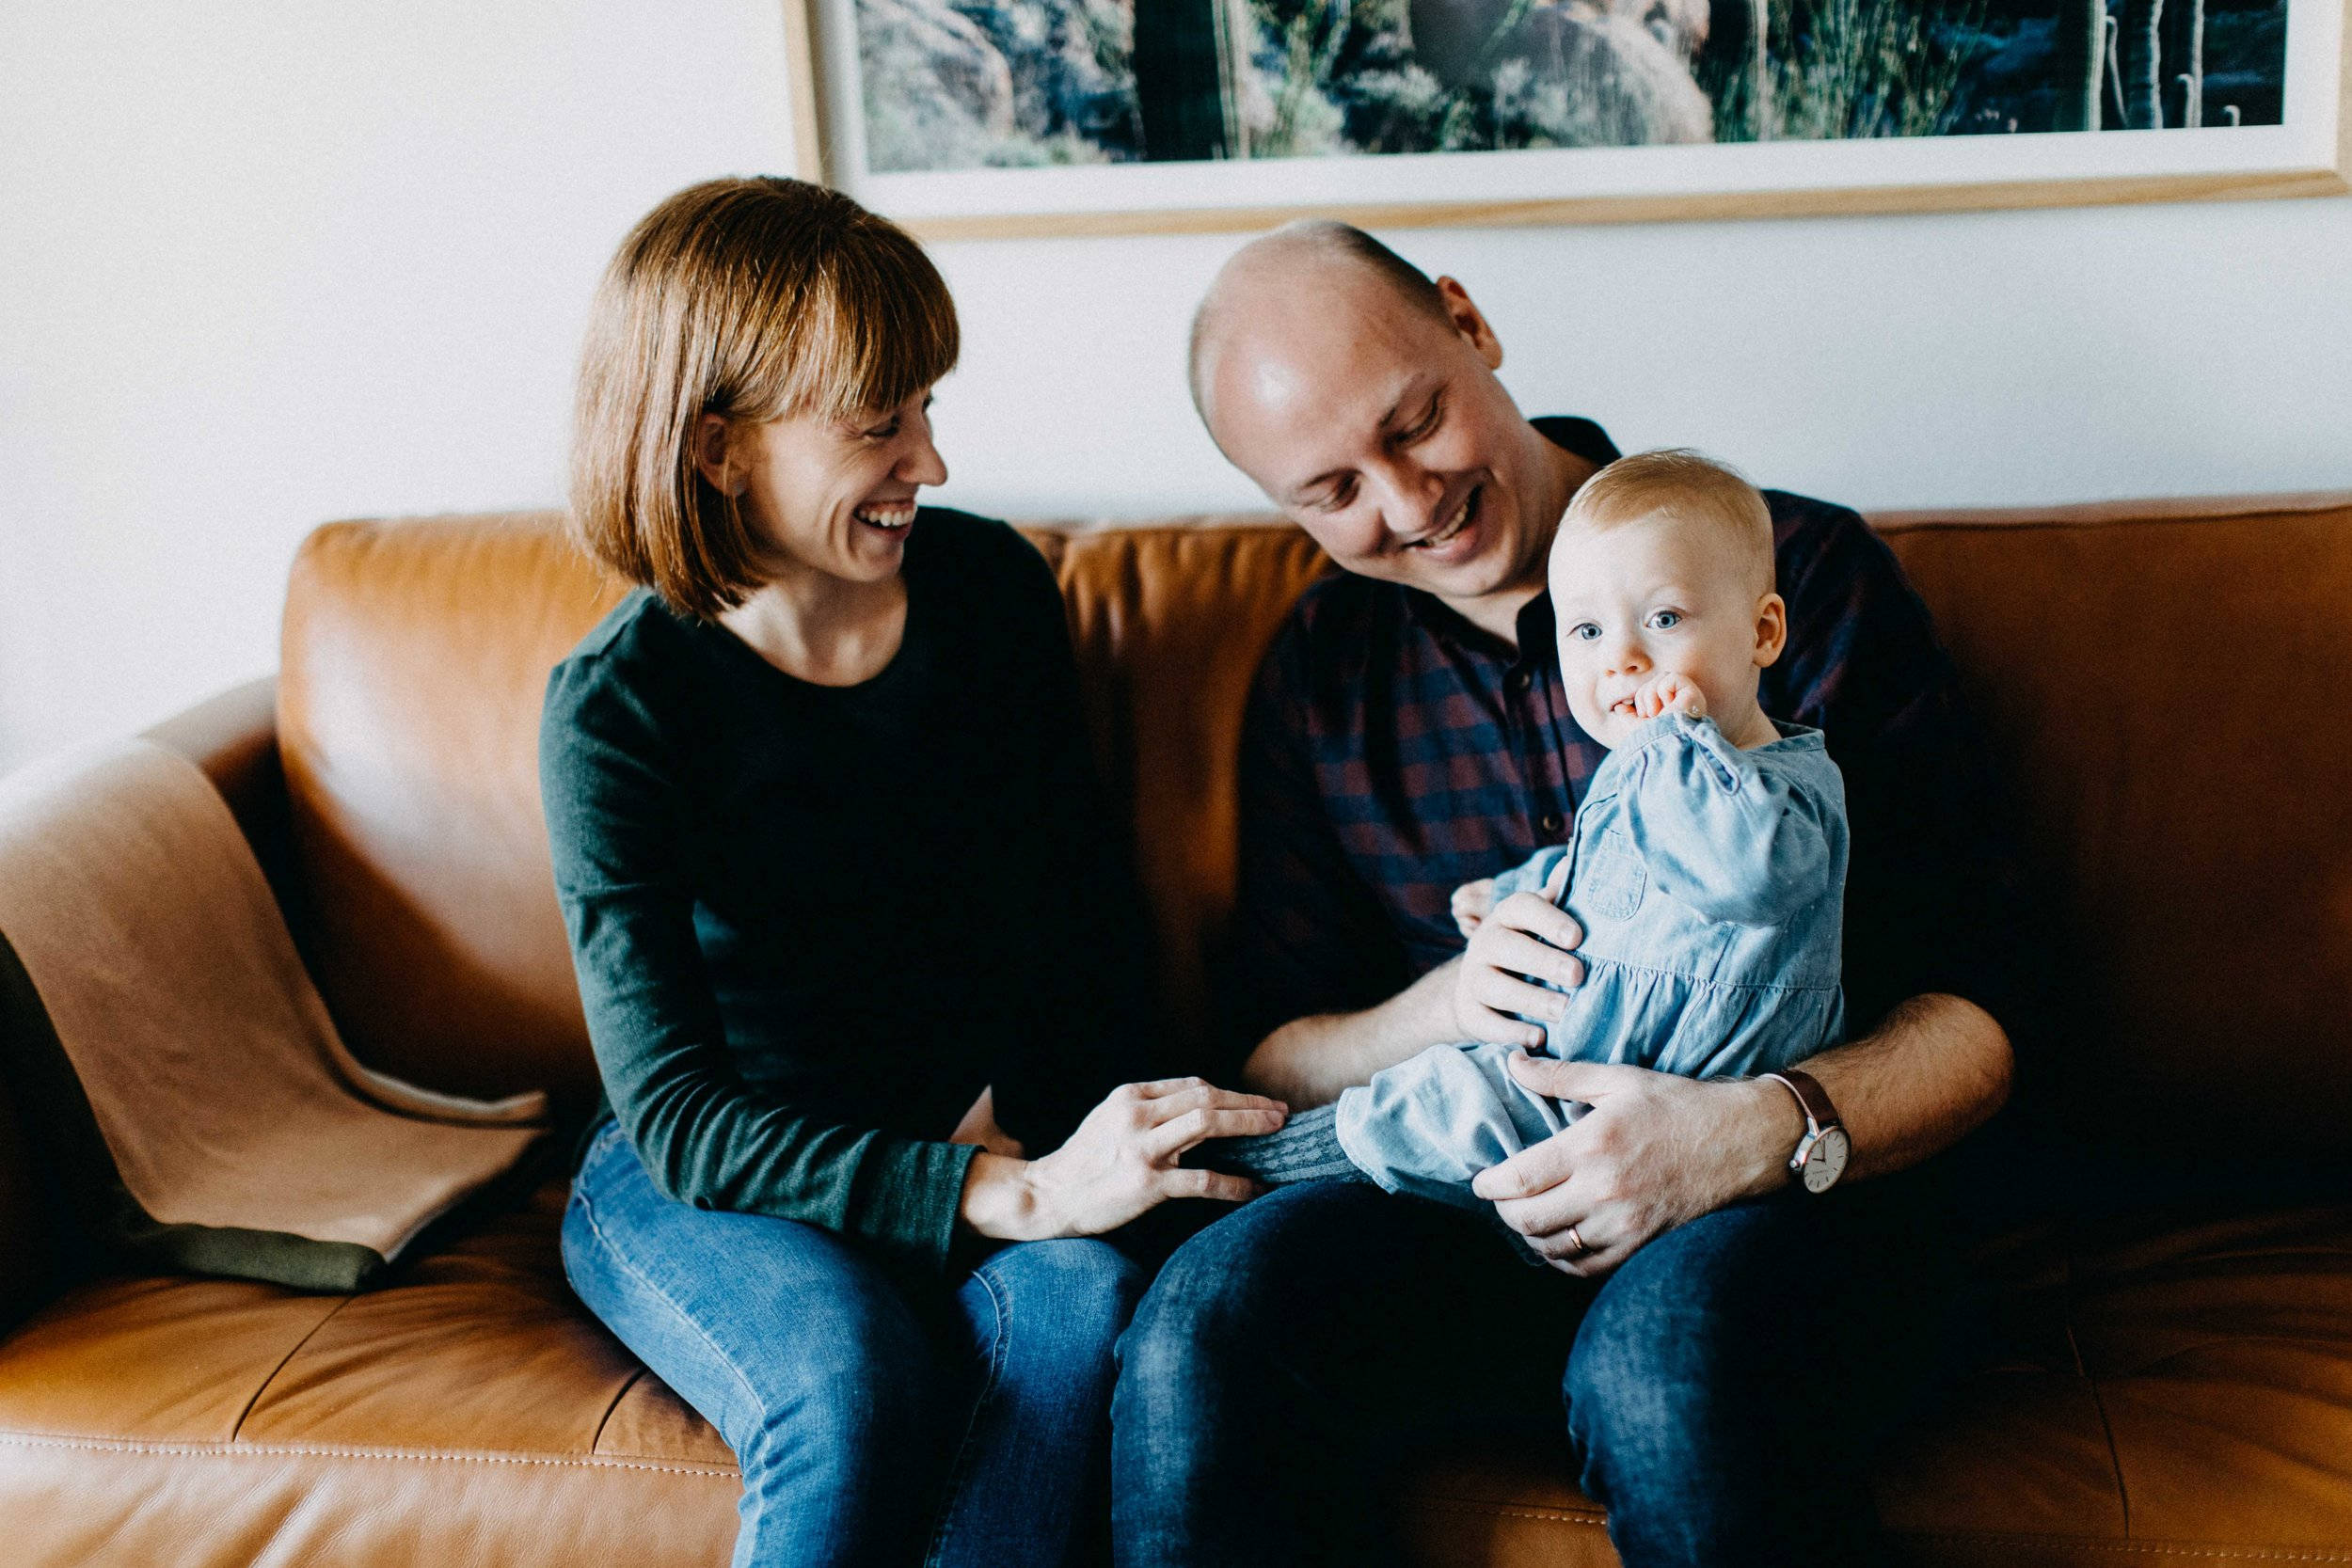 ashfield-family-photographer-camden-macarthur-sander-family-1.jpg